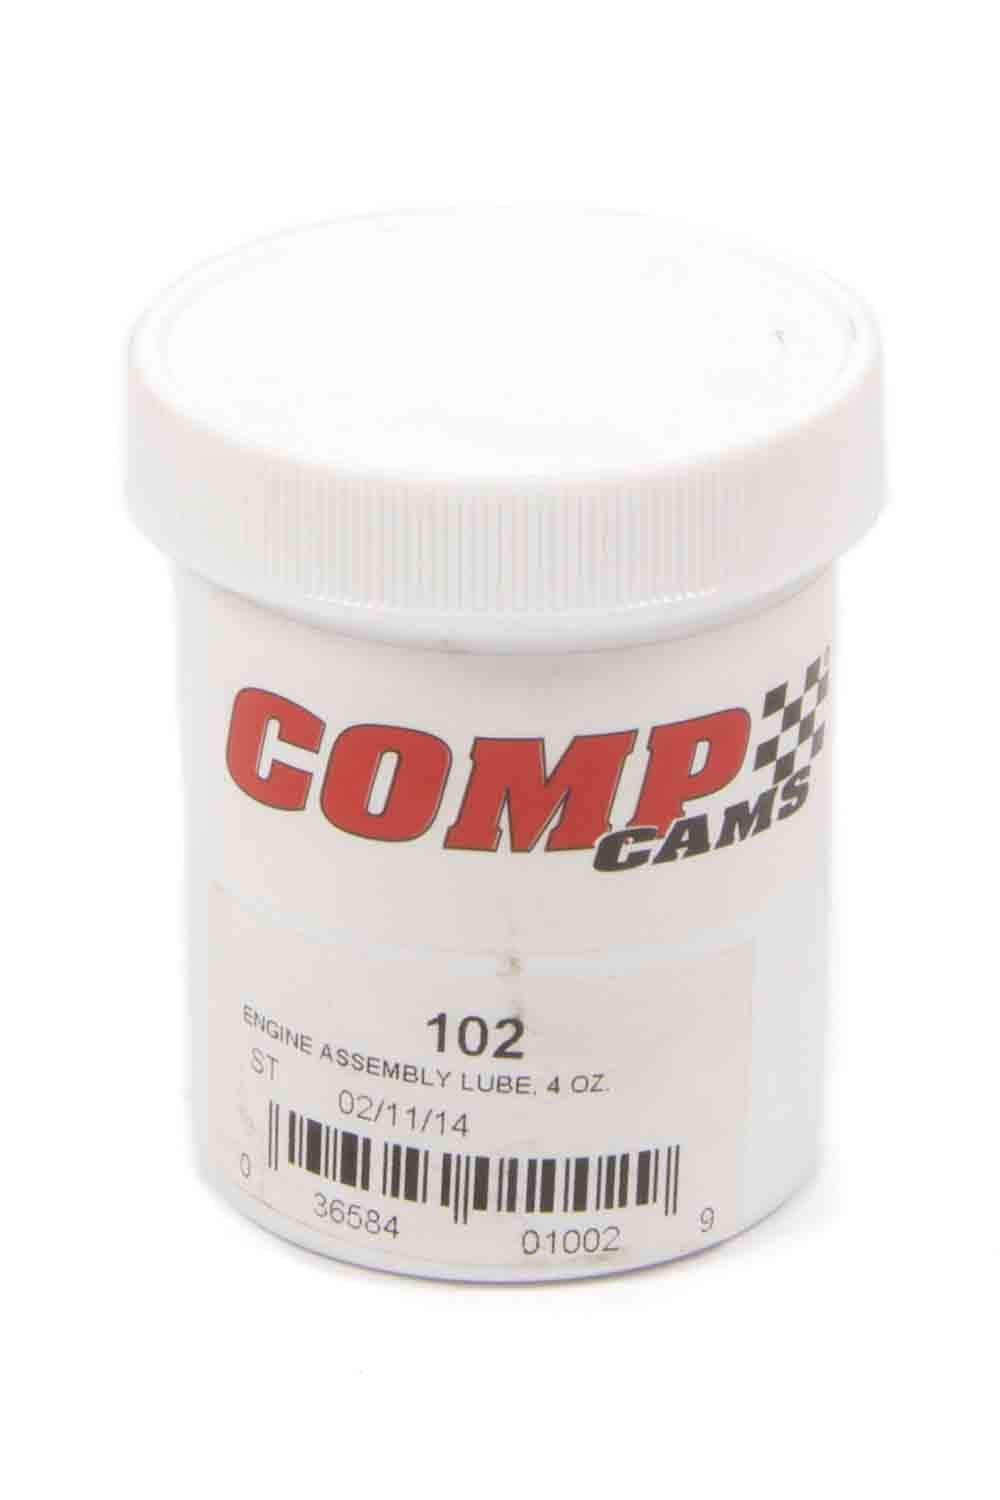 Comp Cams 4 Oz Assembly Lube